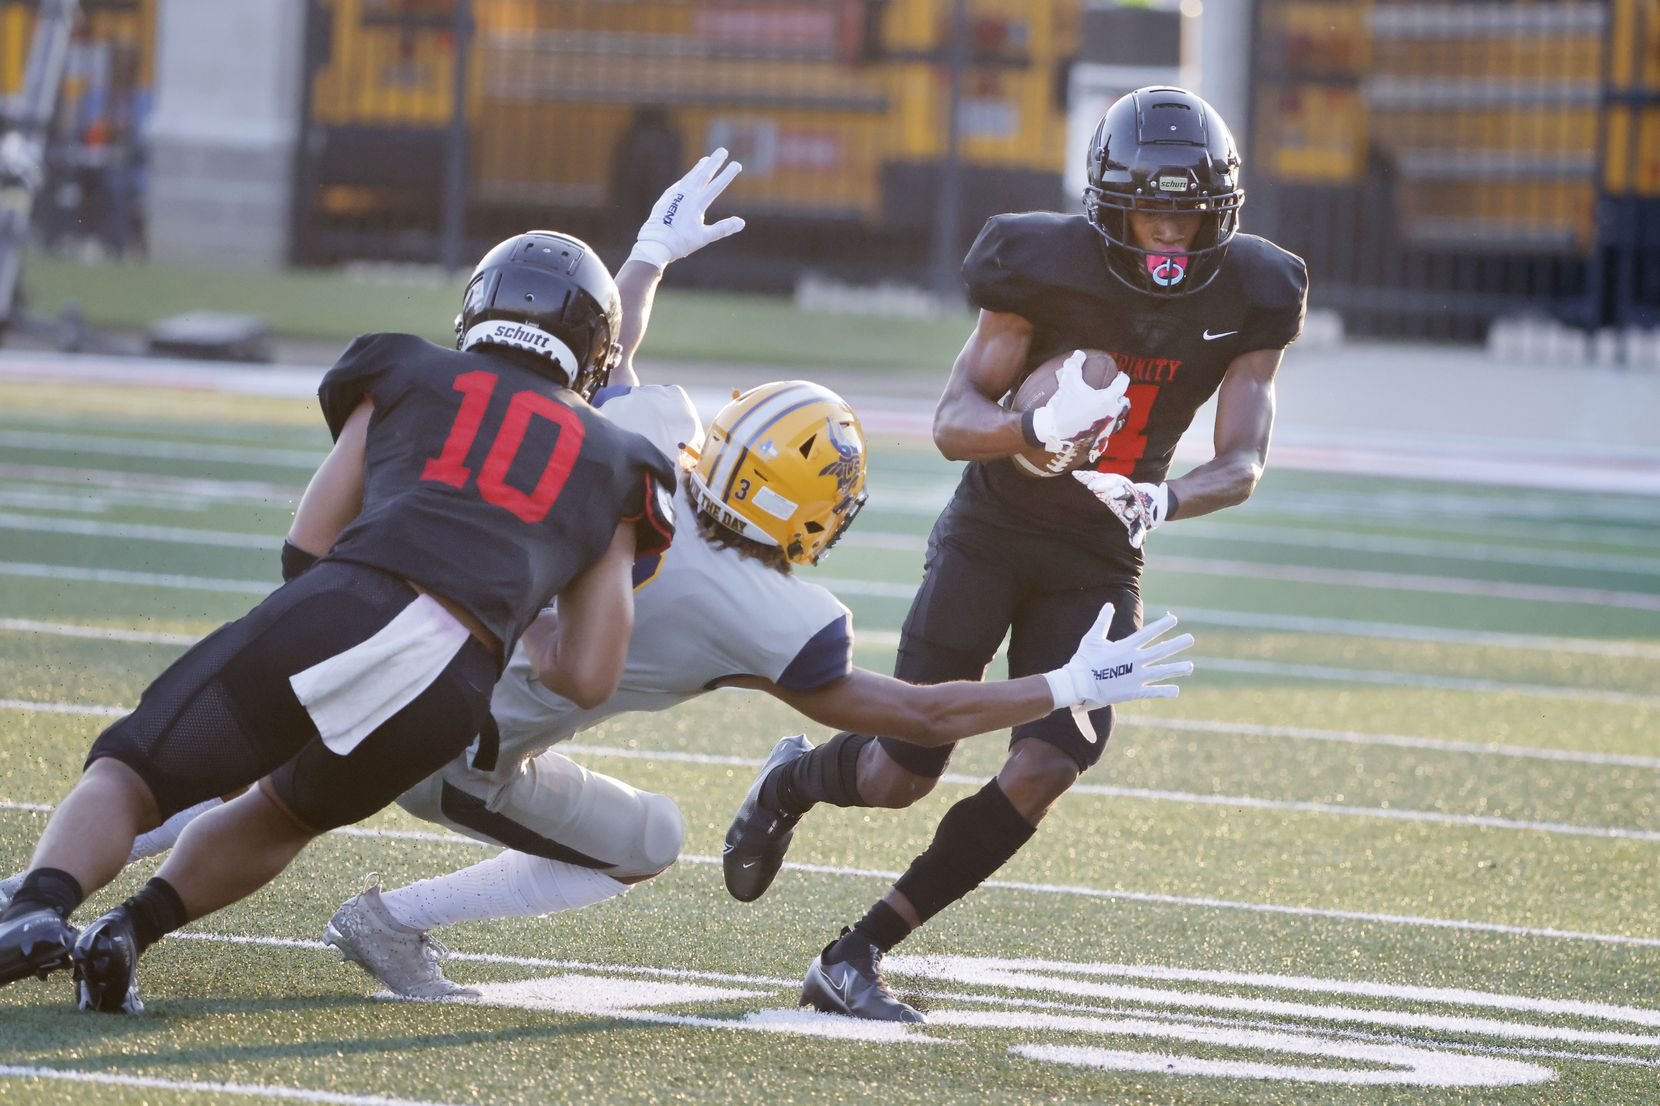 Euless Trinity defender Damarion Dean (4) returns an interception for a touchdown as teammate David Lang (10) makes a block on  an Arlington Lamar player during the first half of their high school football game in Bedford, Texas on Aug. 26, 2021. (Michael Ainsworth/Special Contributor)